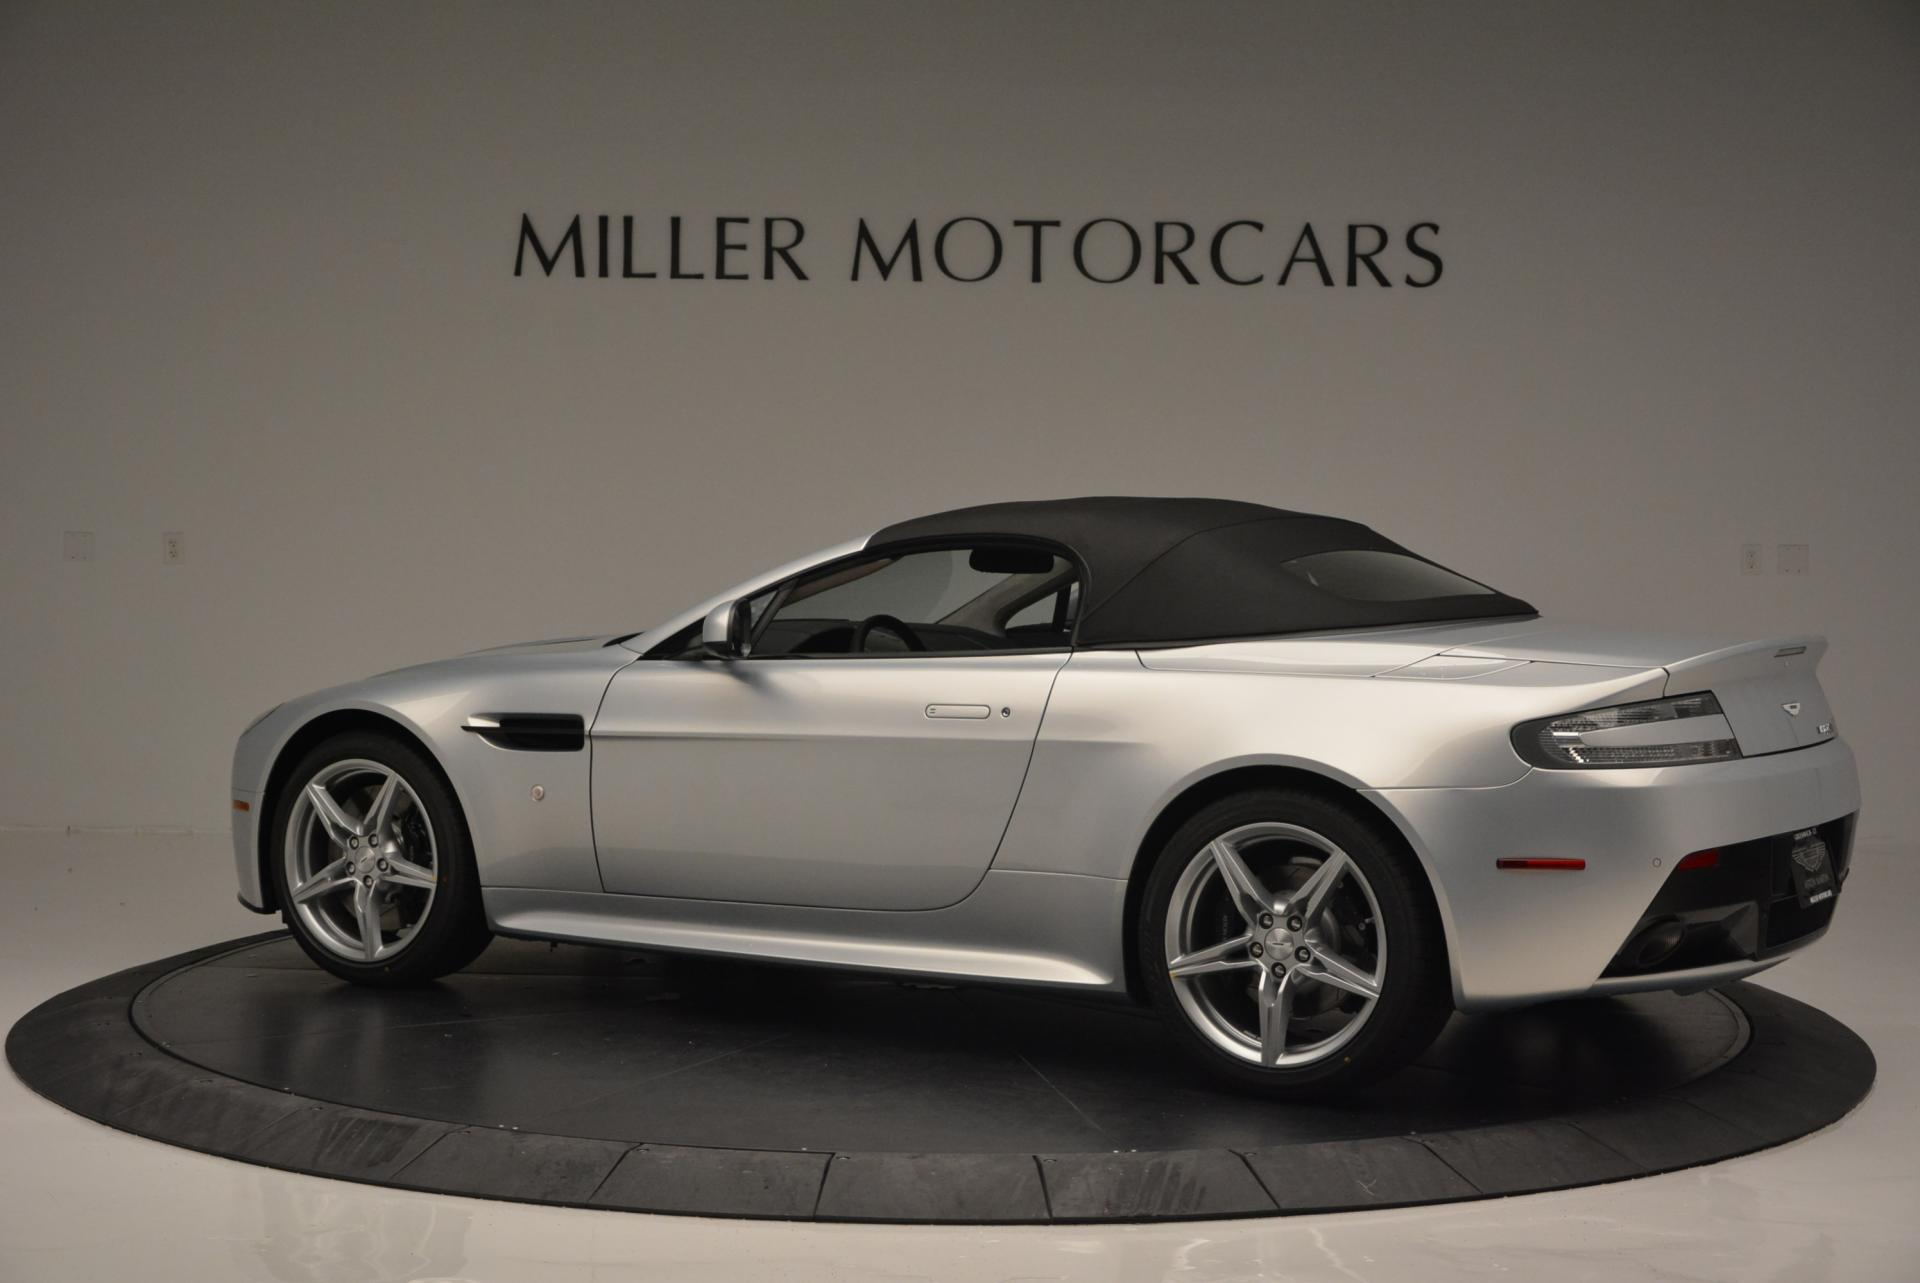 New 2016 Aston Martin V8 Vantage GTS Roadster For Sale In Westport, CT 90_p15